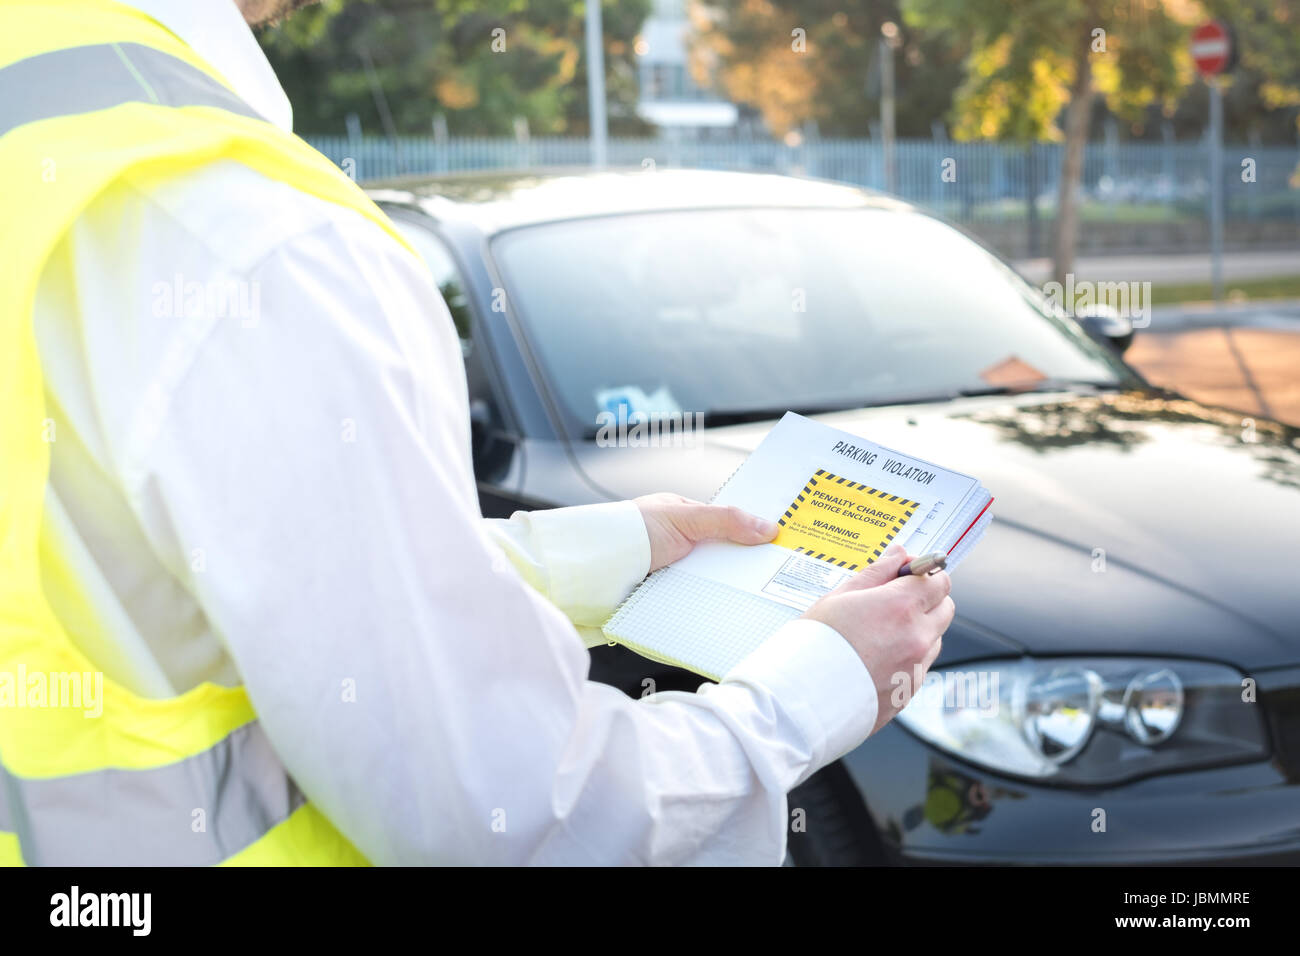 Police officer giving a ticket fine for parking violation - Stock Image